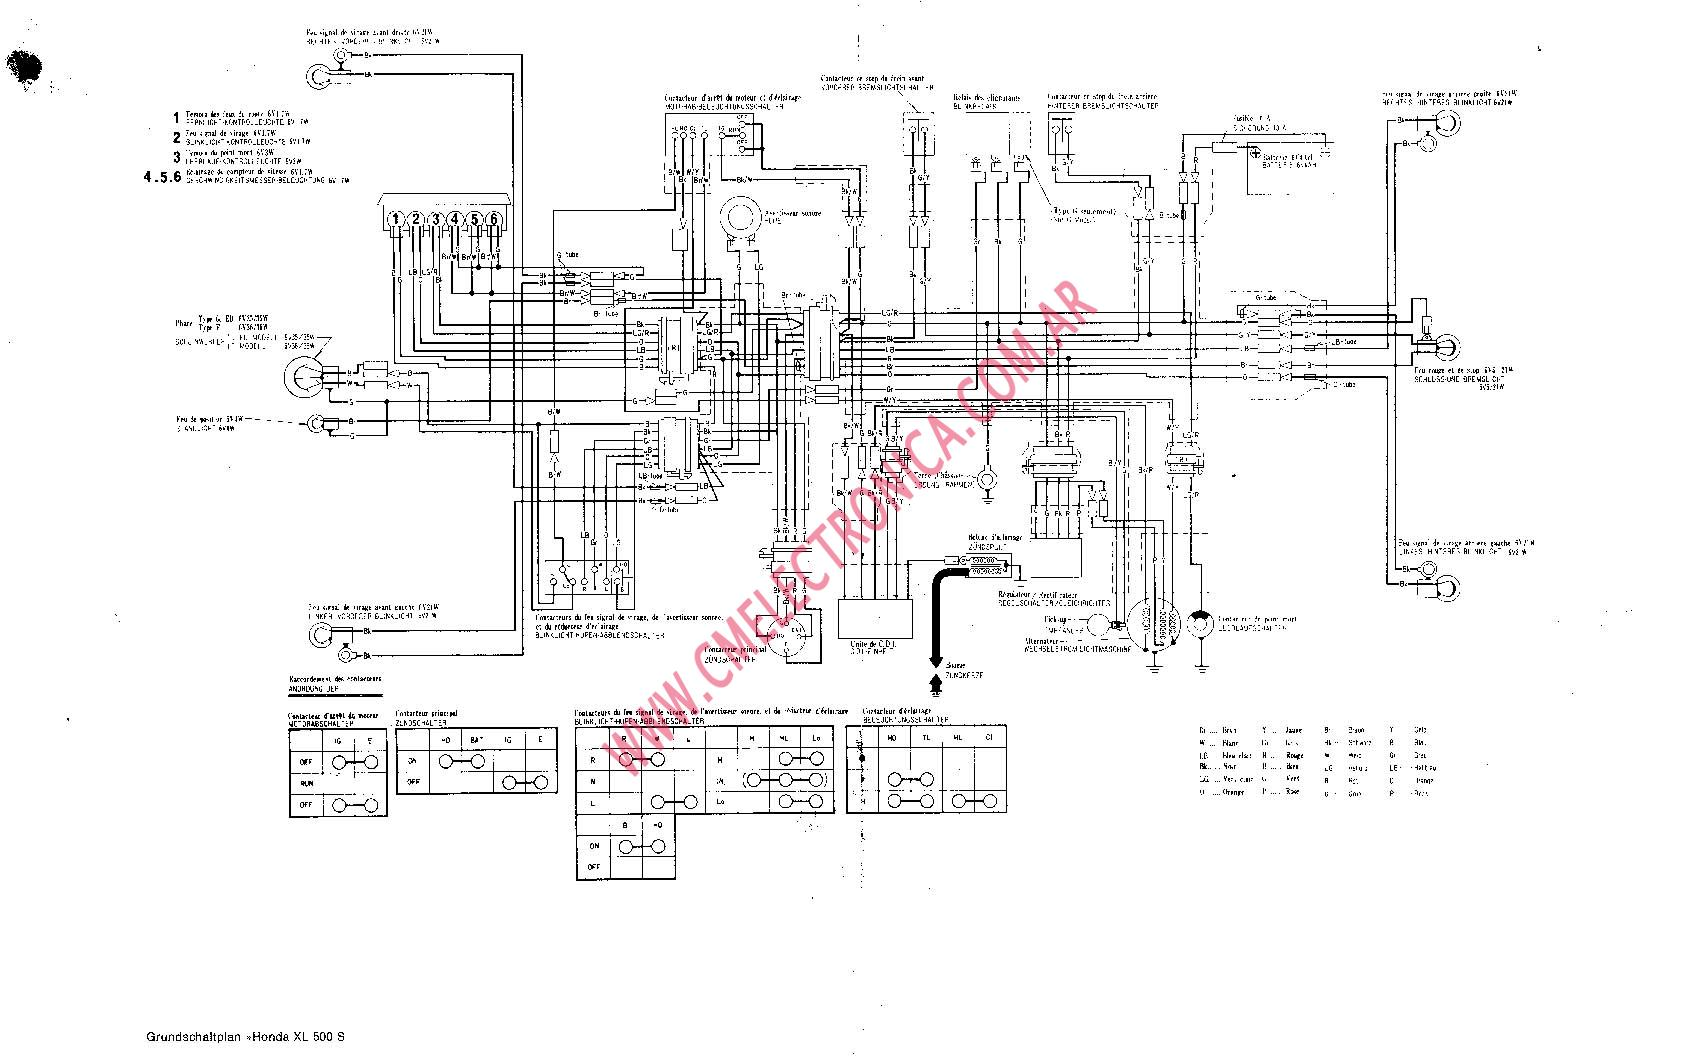 Scooter Controller Brushless Schematic Diagram